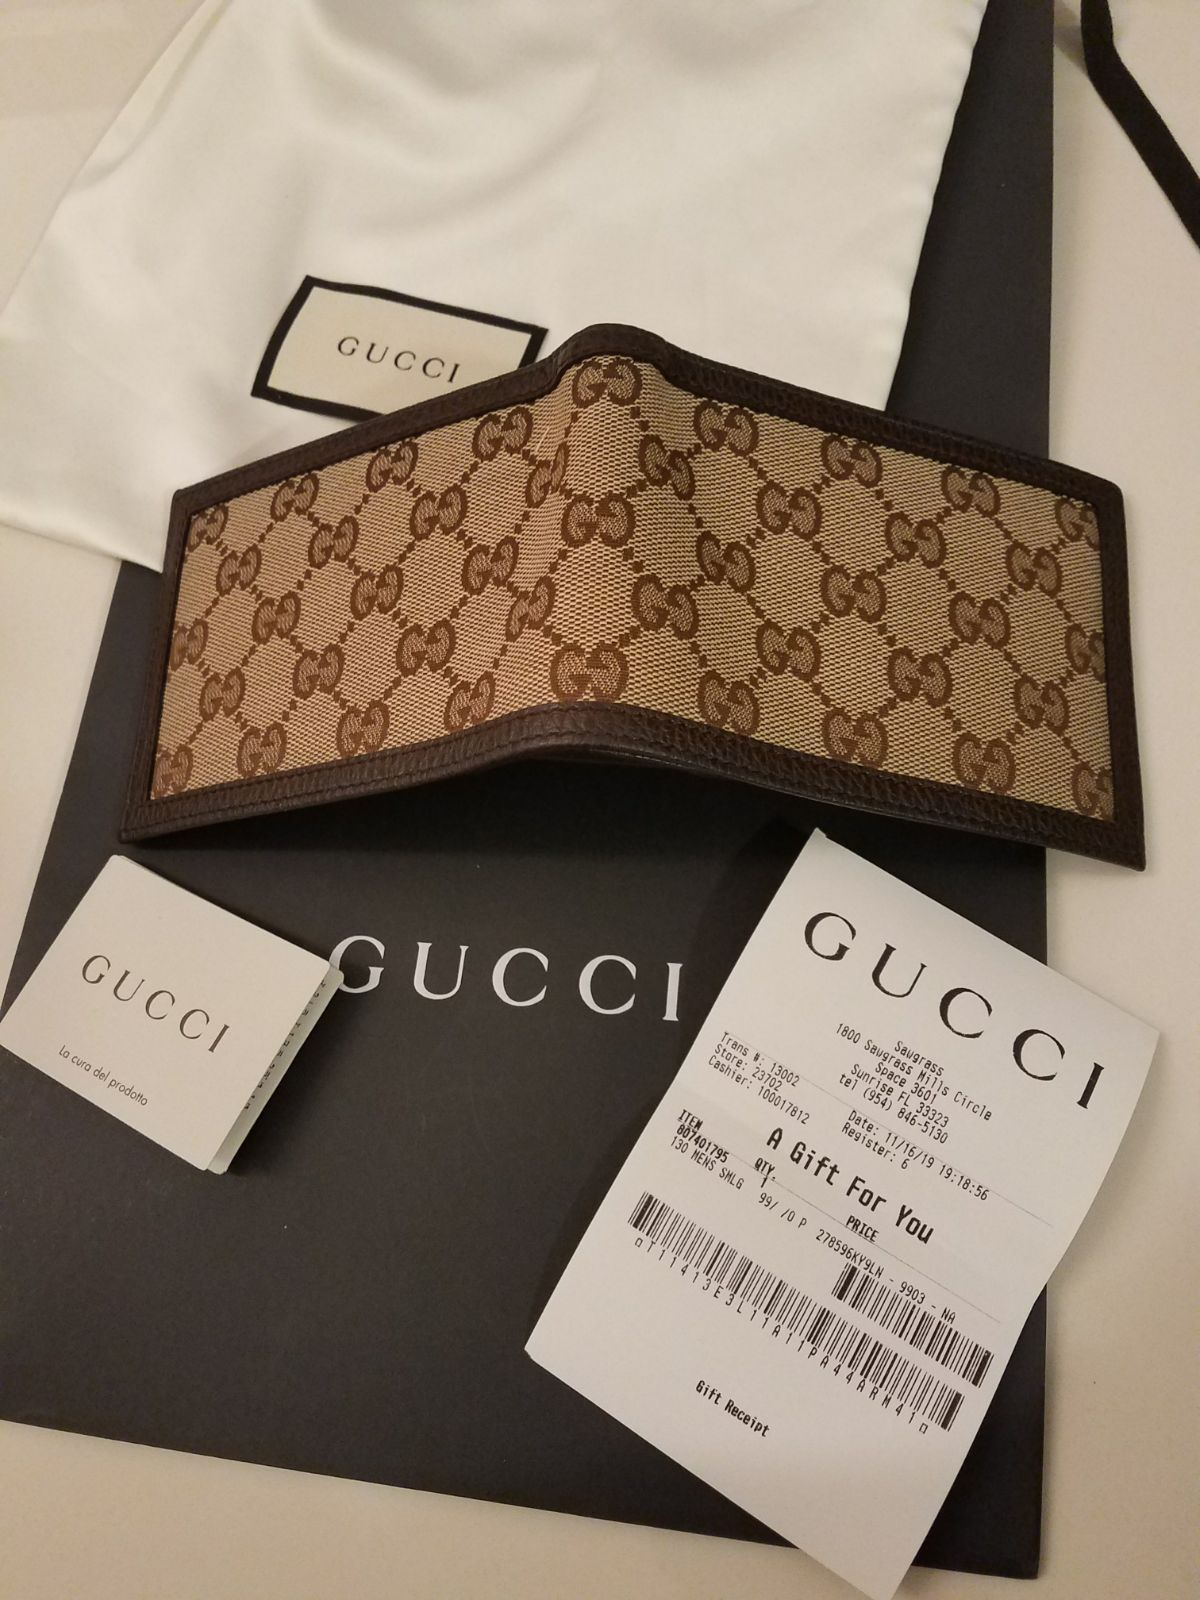 Authentic Gucci Wallet Gg Guccissima On Mercari Gucci Wallet Gucci Gucci Gifts